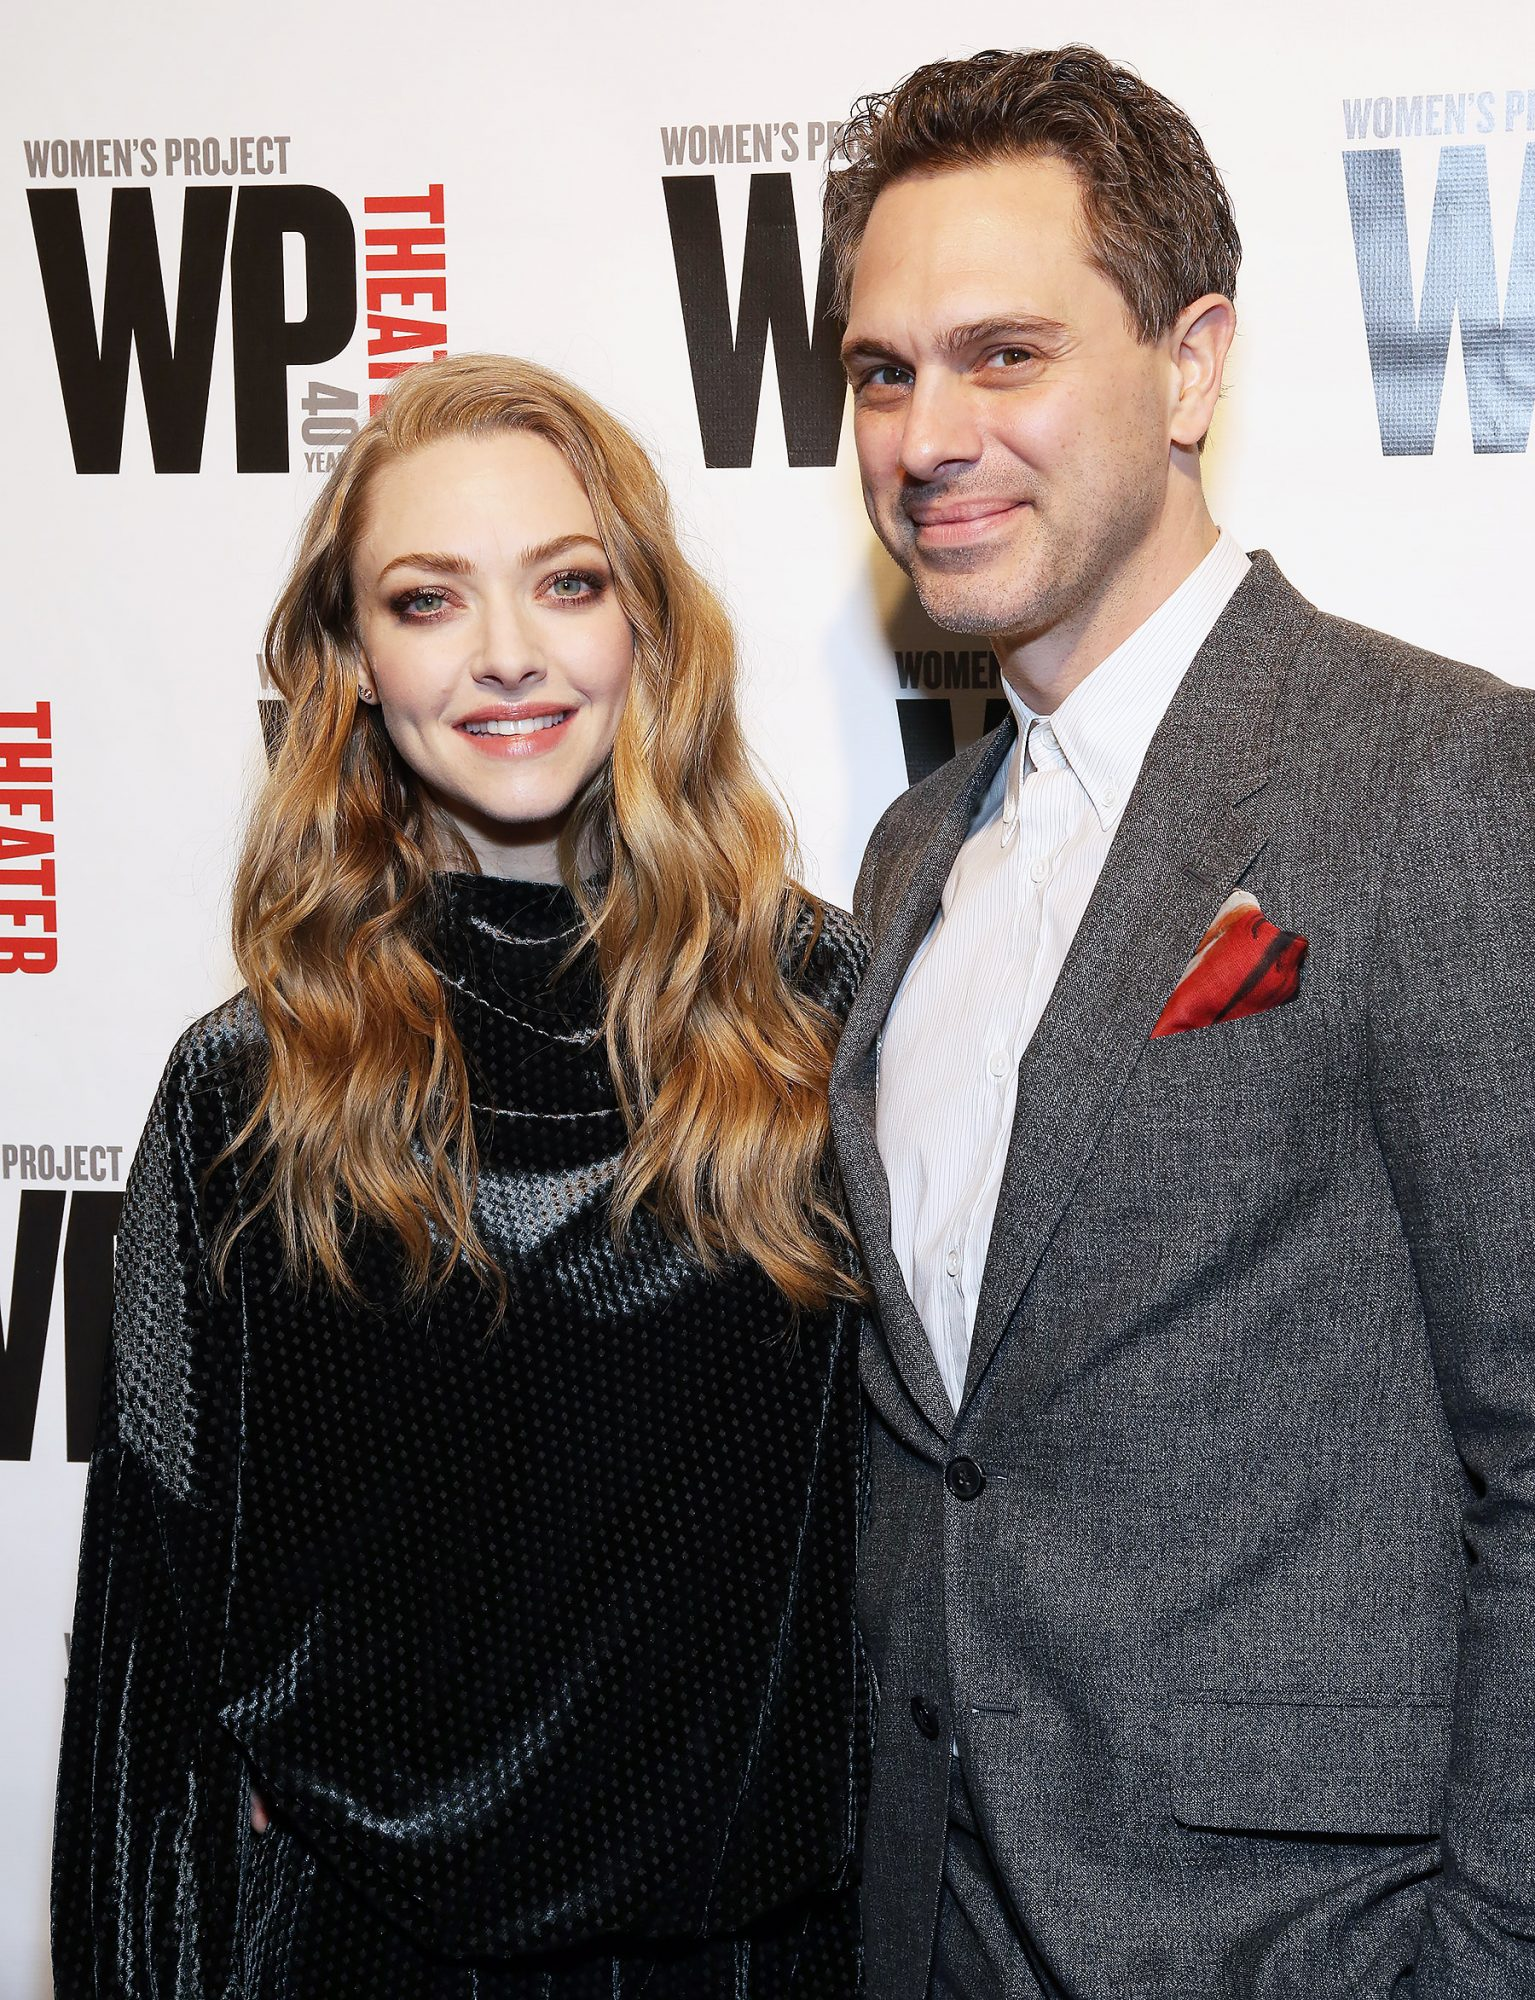 Amanda Seyfried and Thomas Sadowski